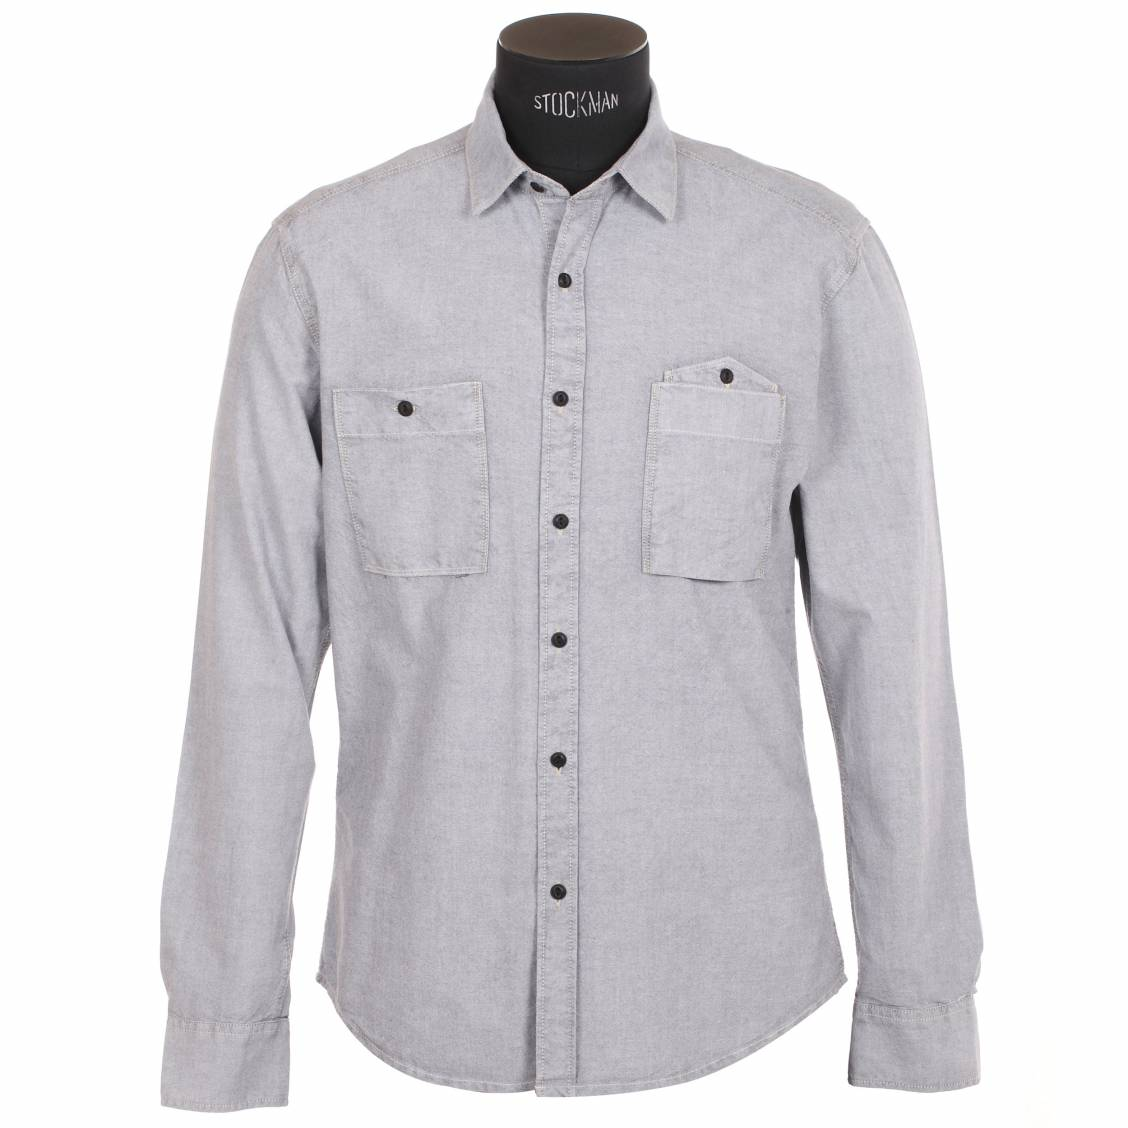 Chemise homme Selected Gris clair, effet jean. Chemise homme Selected Gris clair, effet jean